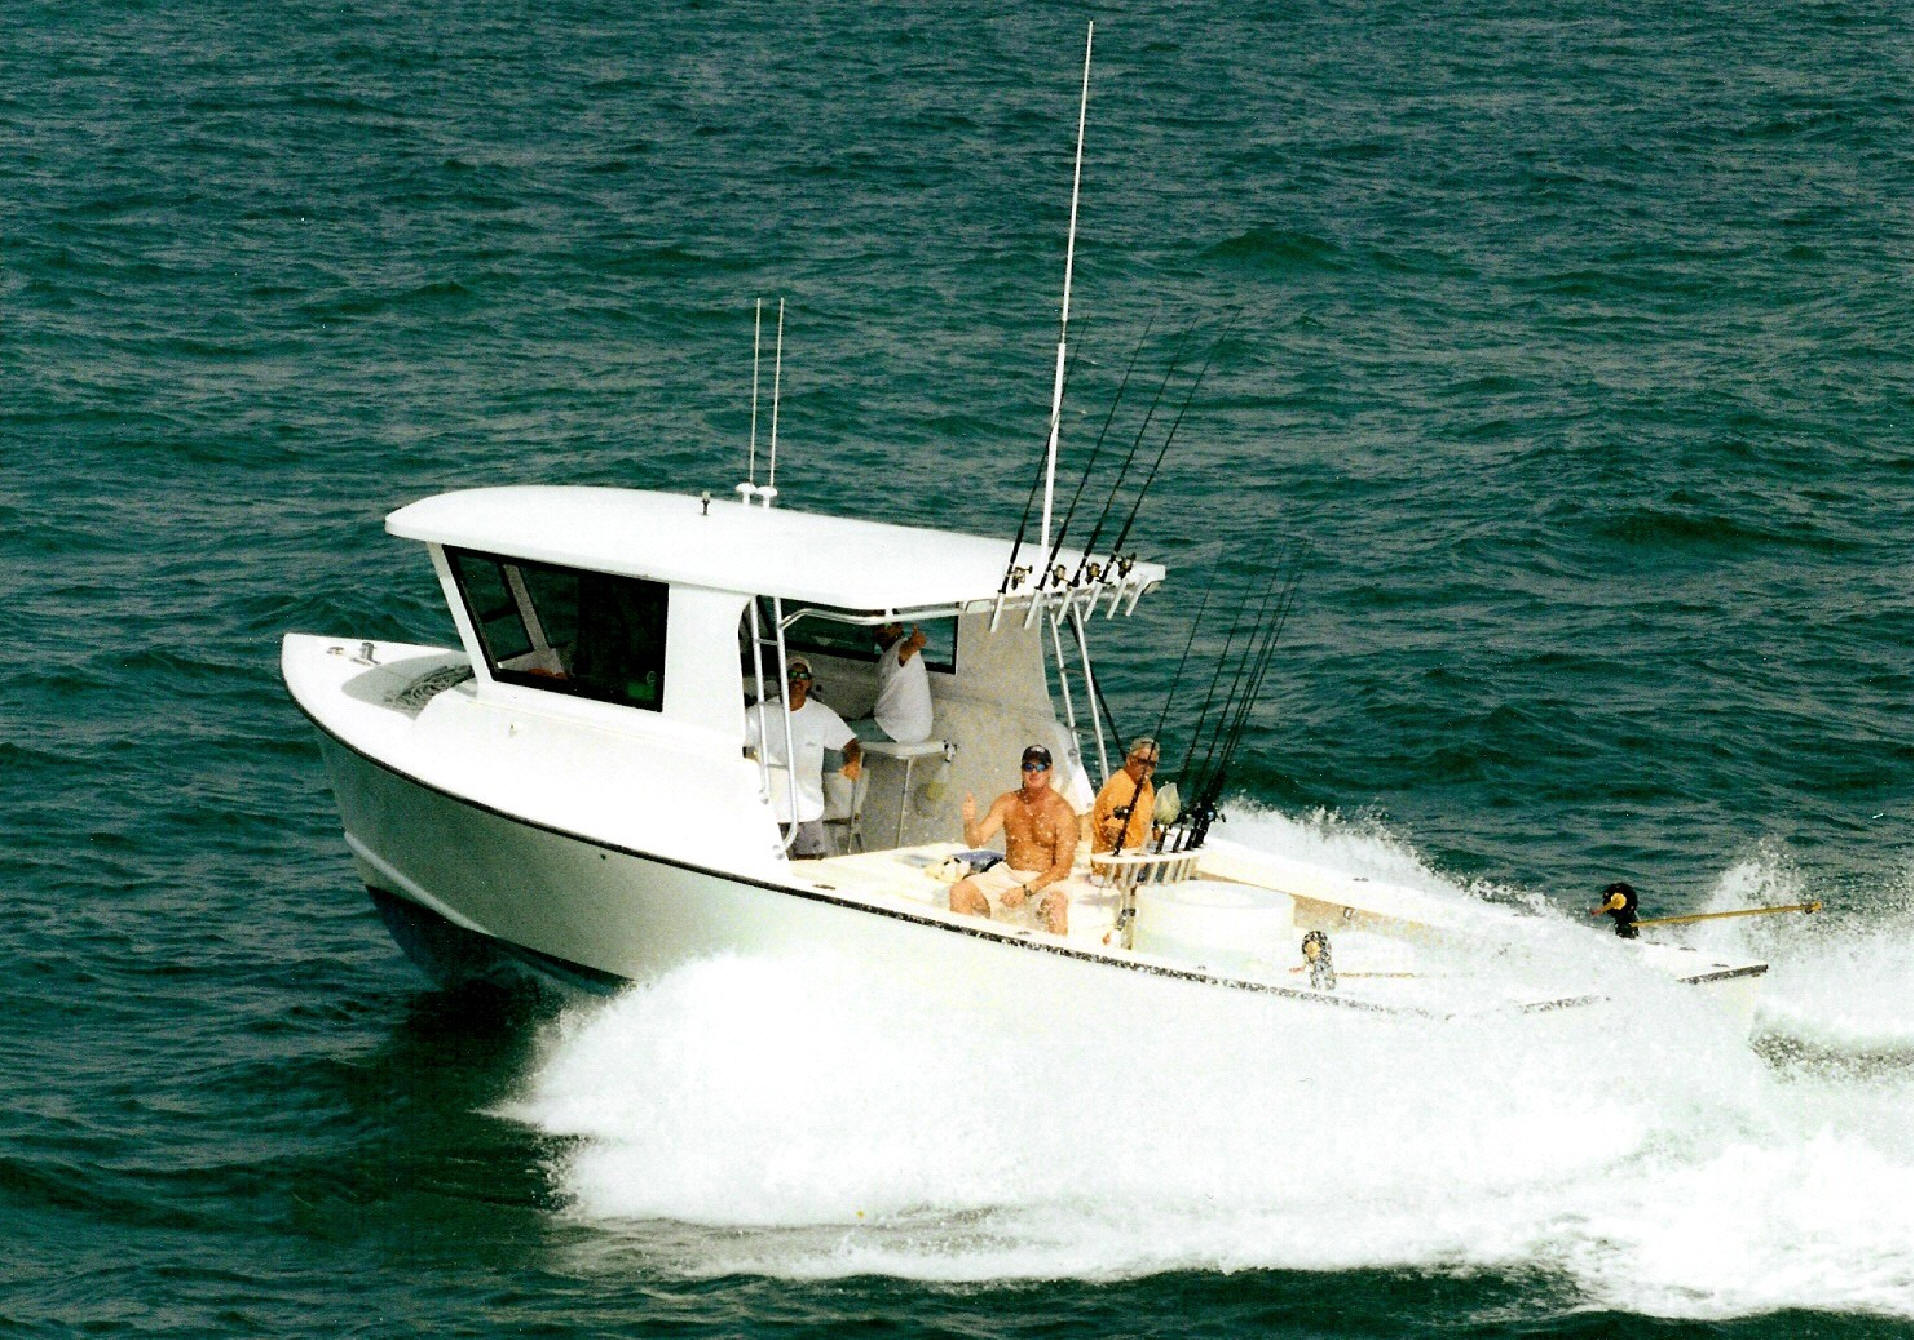 Deep sea fishing charters florida charter fishing for Fishing clearwater fl